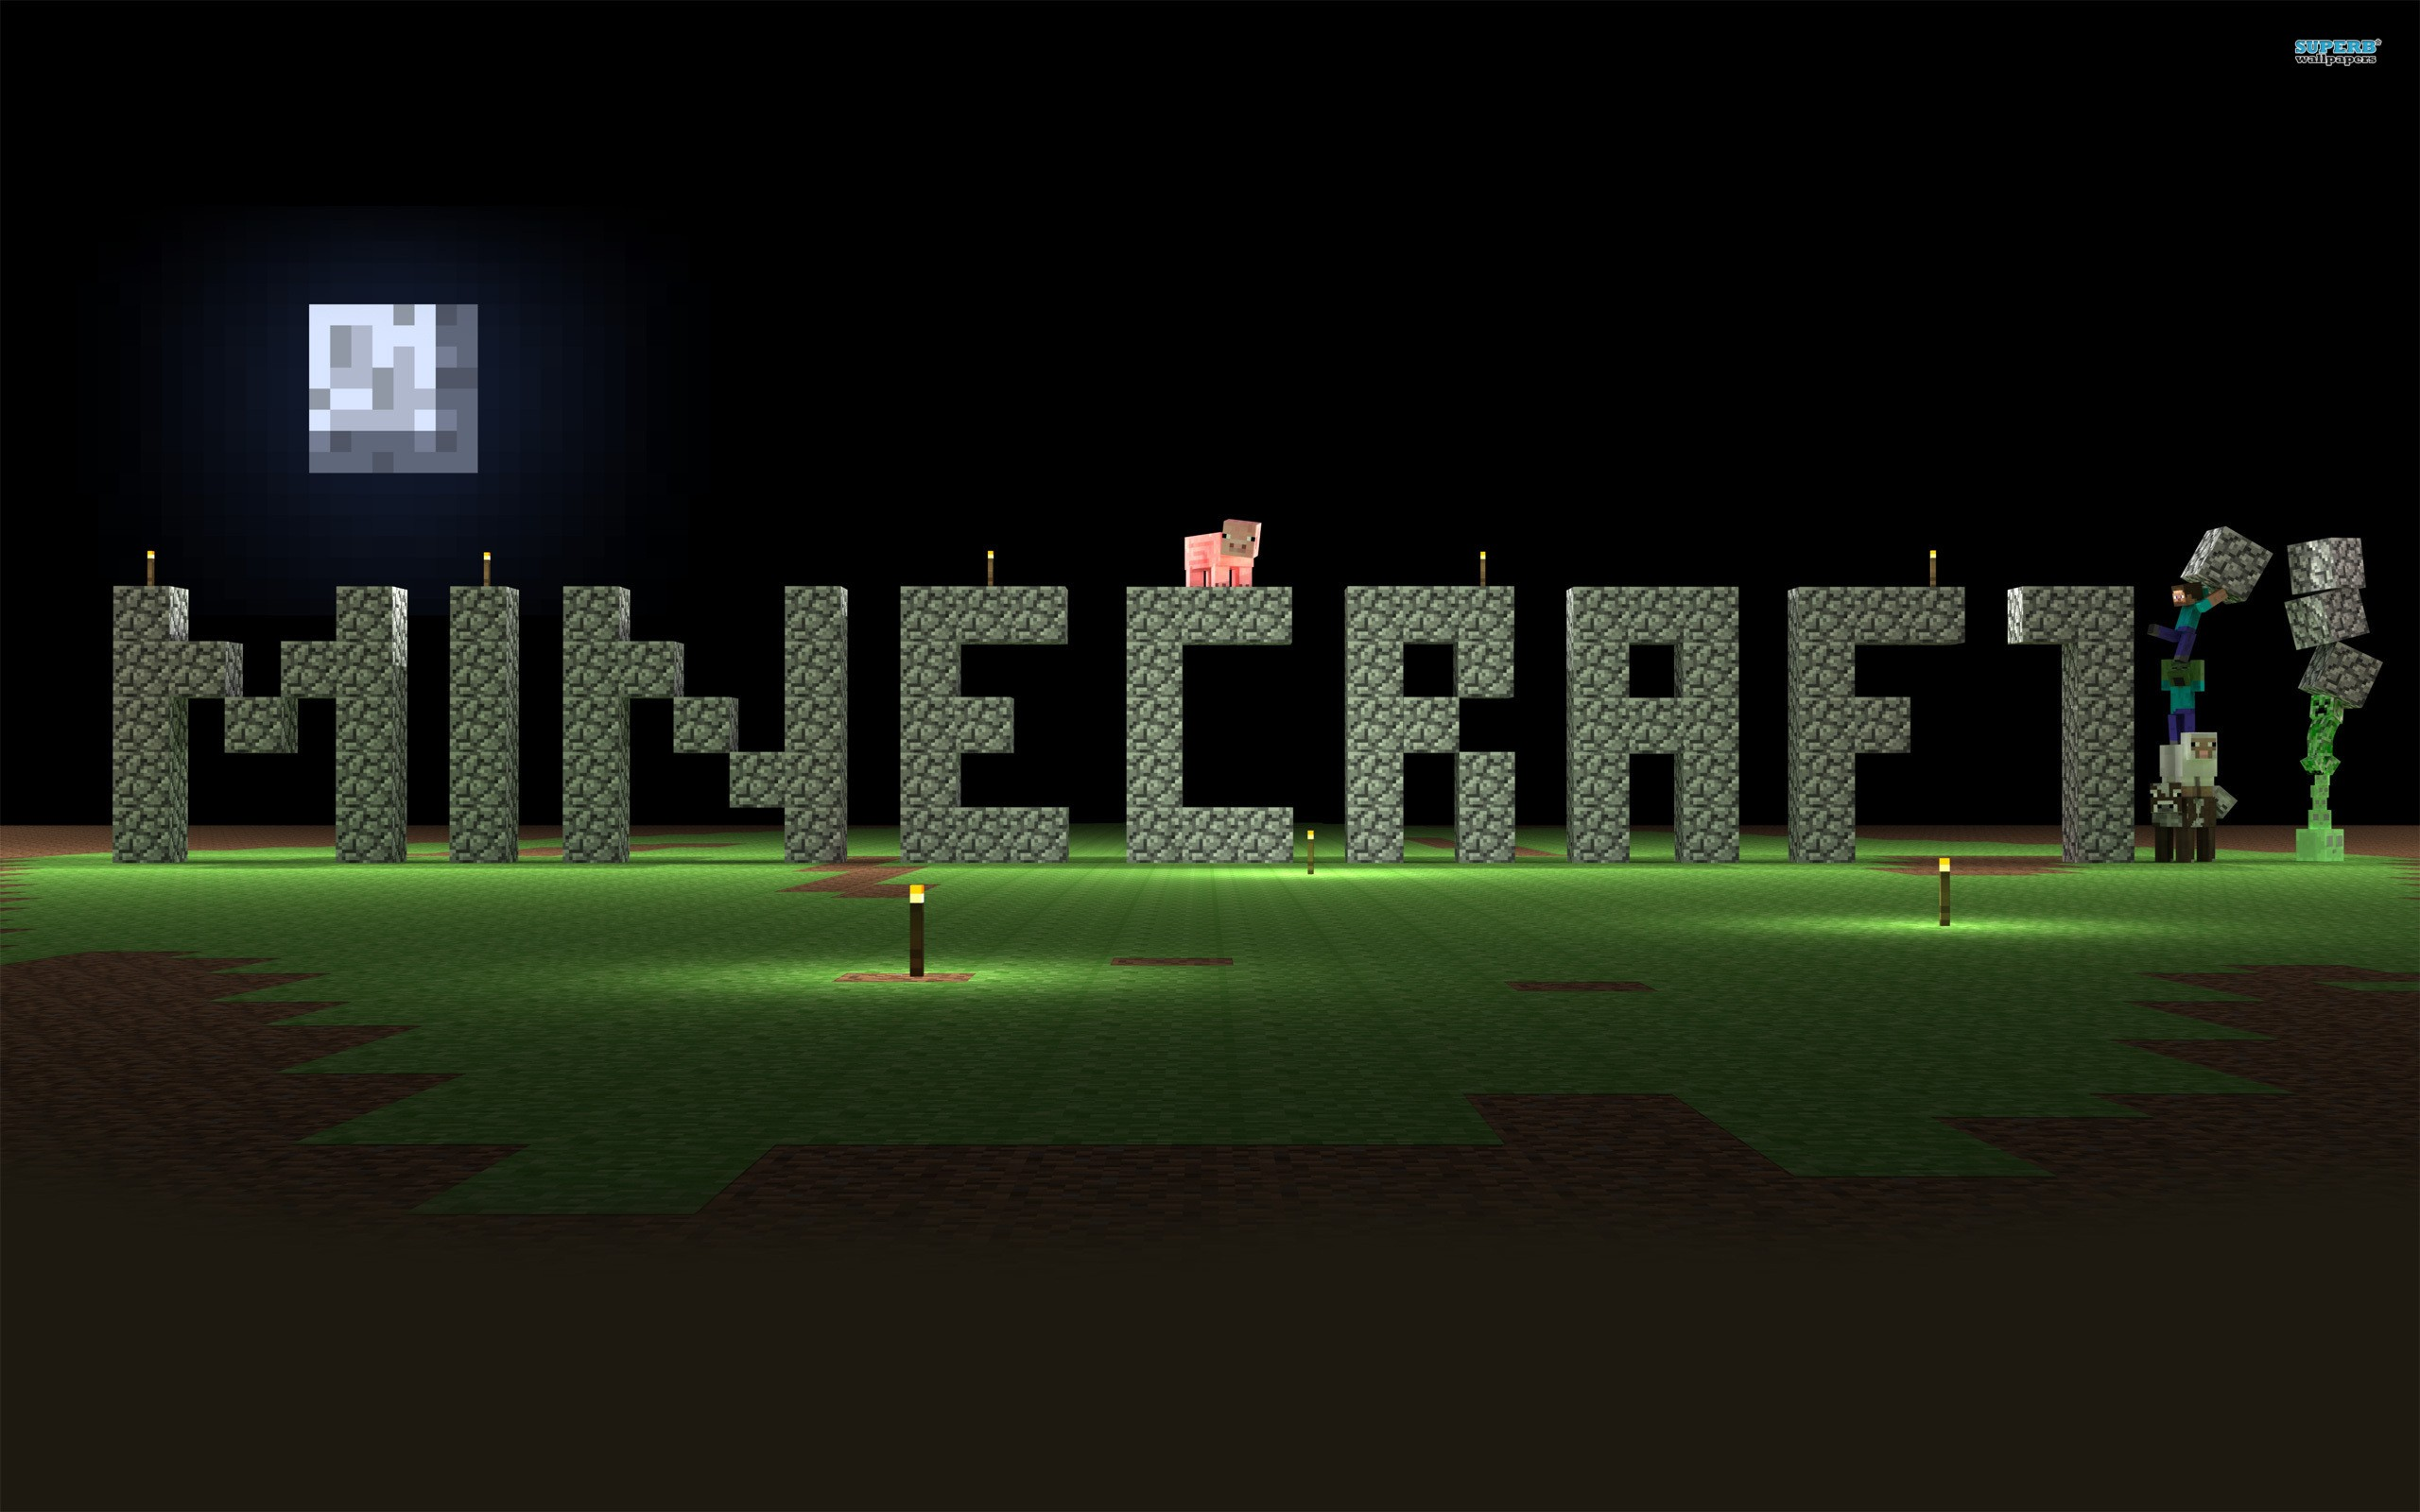 Good Wallpaper Minecraft Iphone Se - 235174-amazing-cool-minecraft-backgrounds-2560x1600-for-iphone-7  Image_989689.jpg